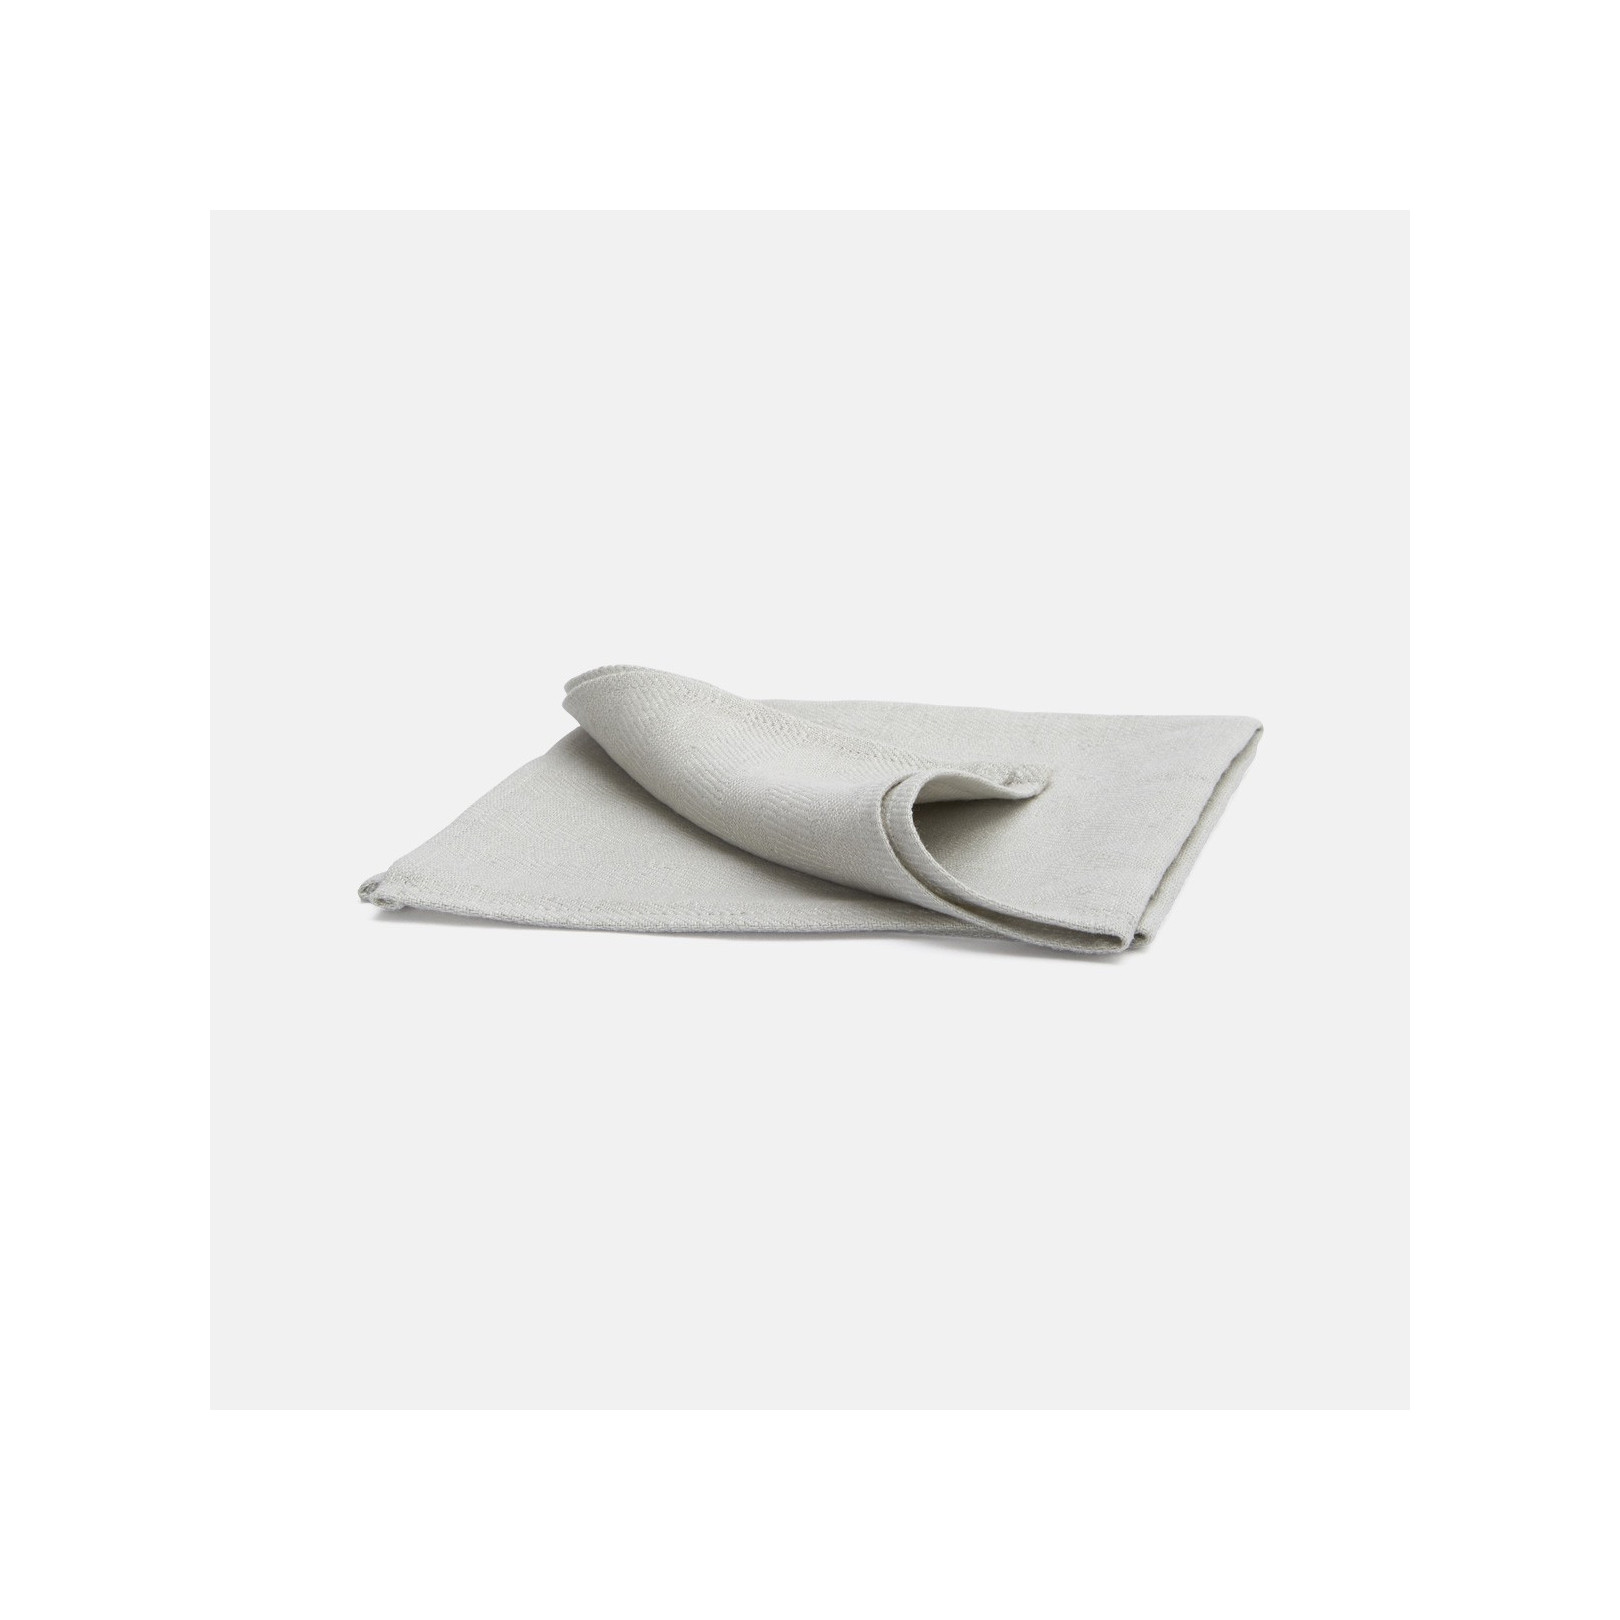 Serviette de table en lin chevron